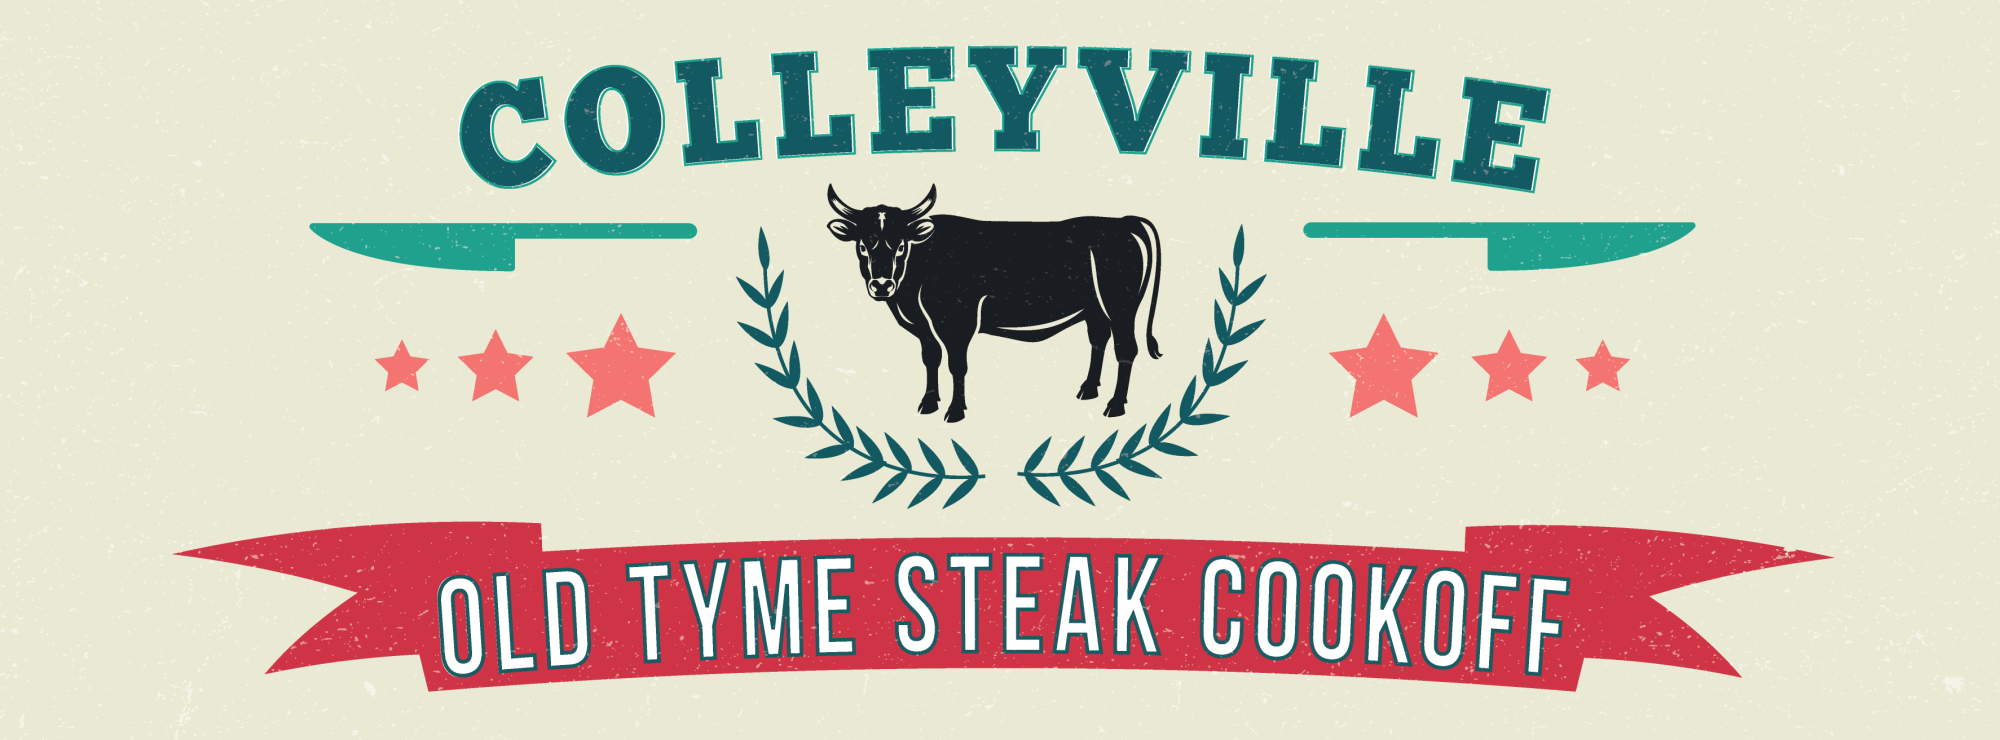 Old Tyme Steak Cookoff